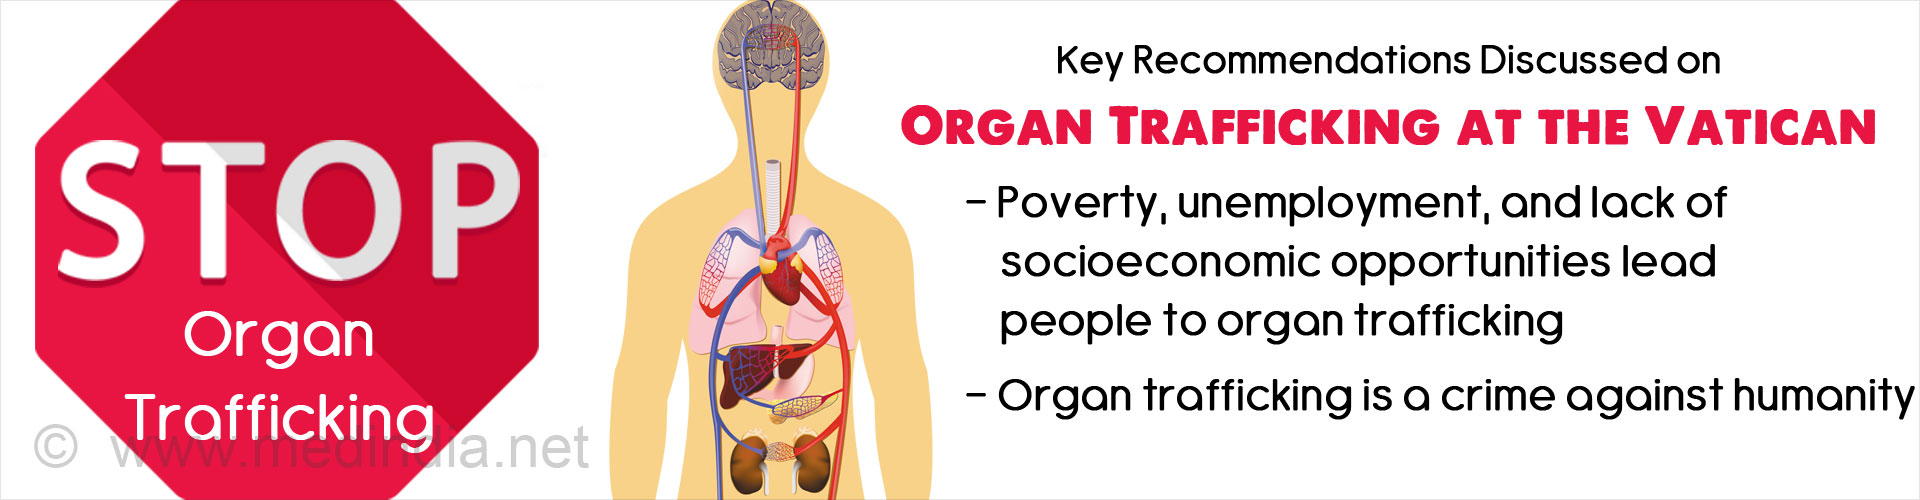 Key Recommendations Discussed at the Pontifical Academy of Sciences Summit on Organ Trafficking at the Vatican